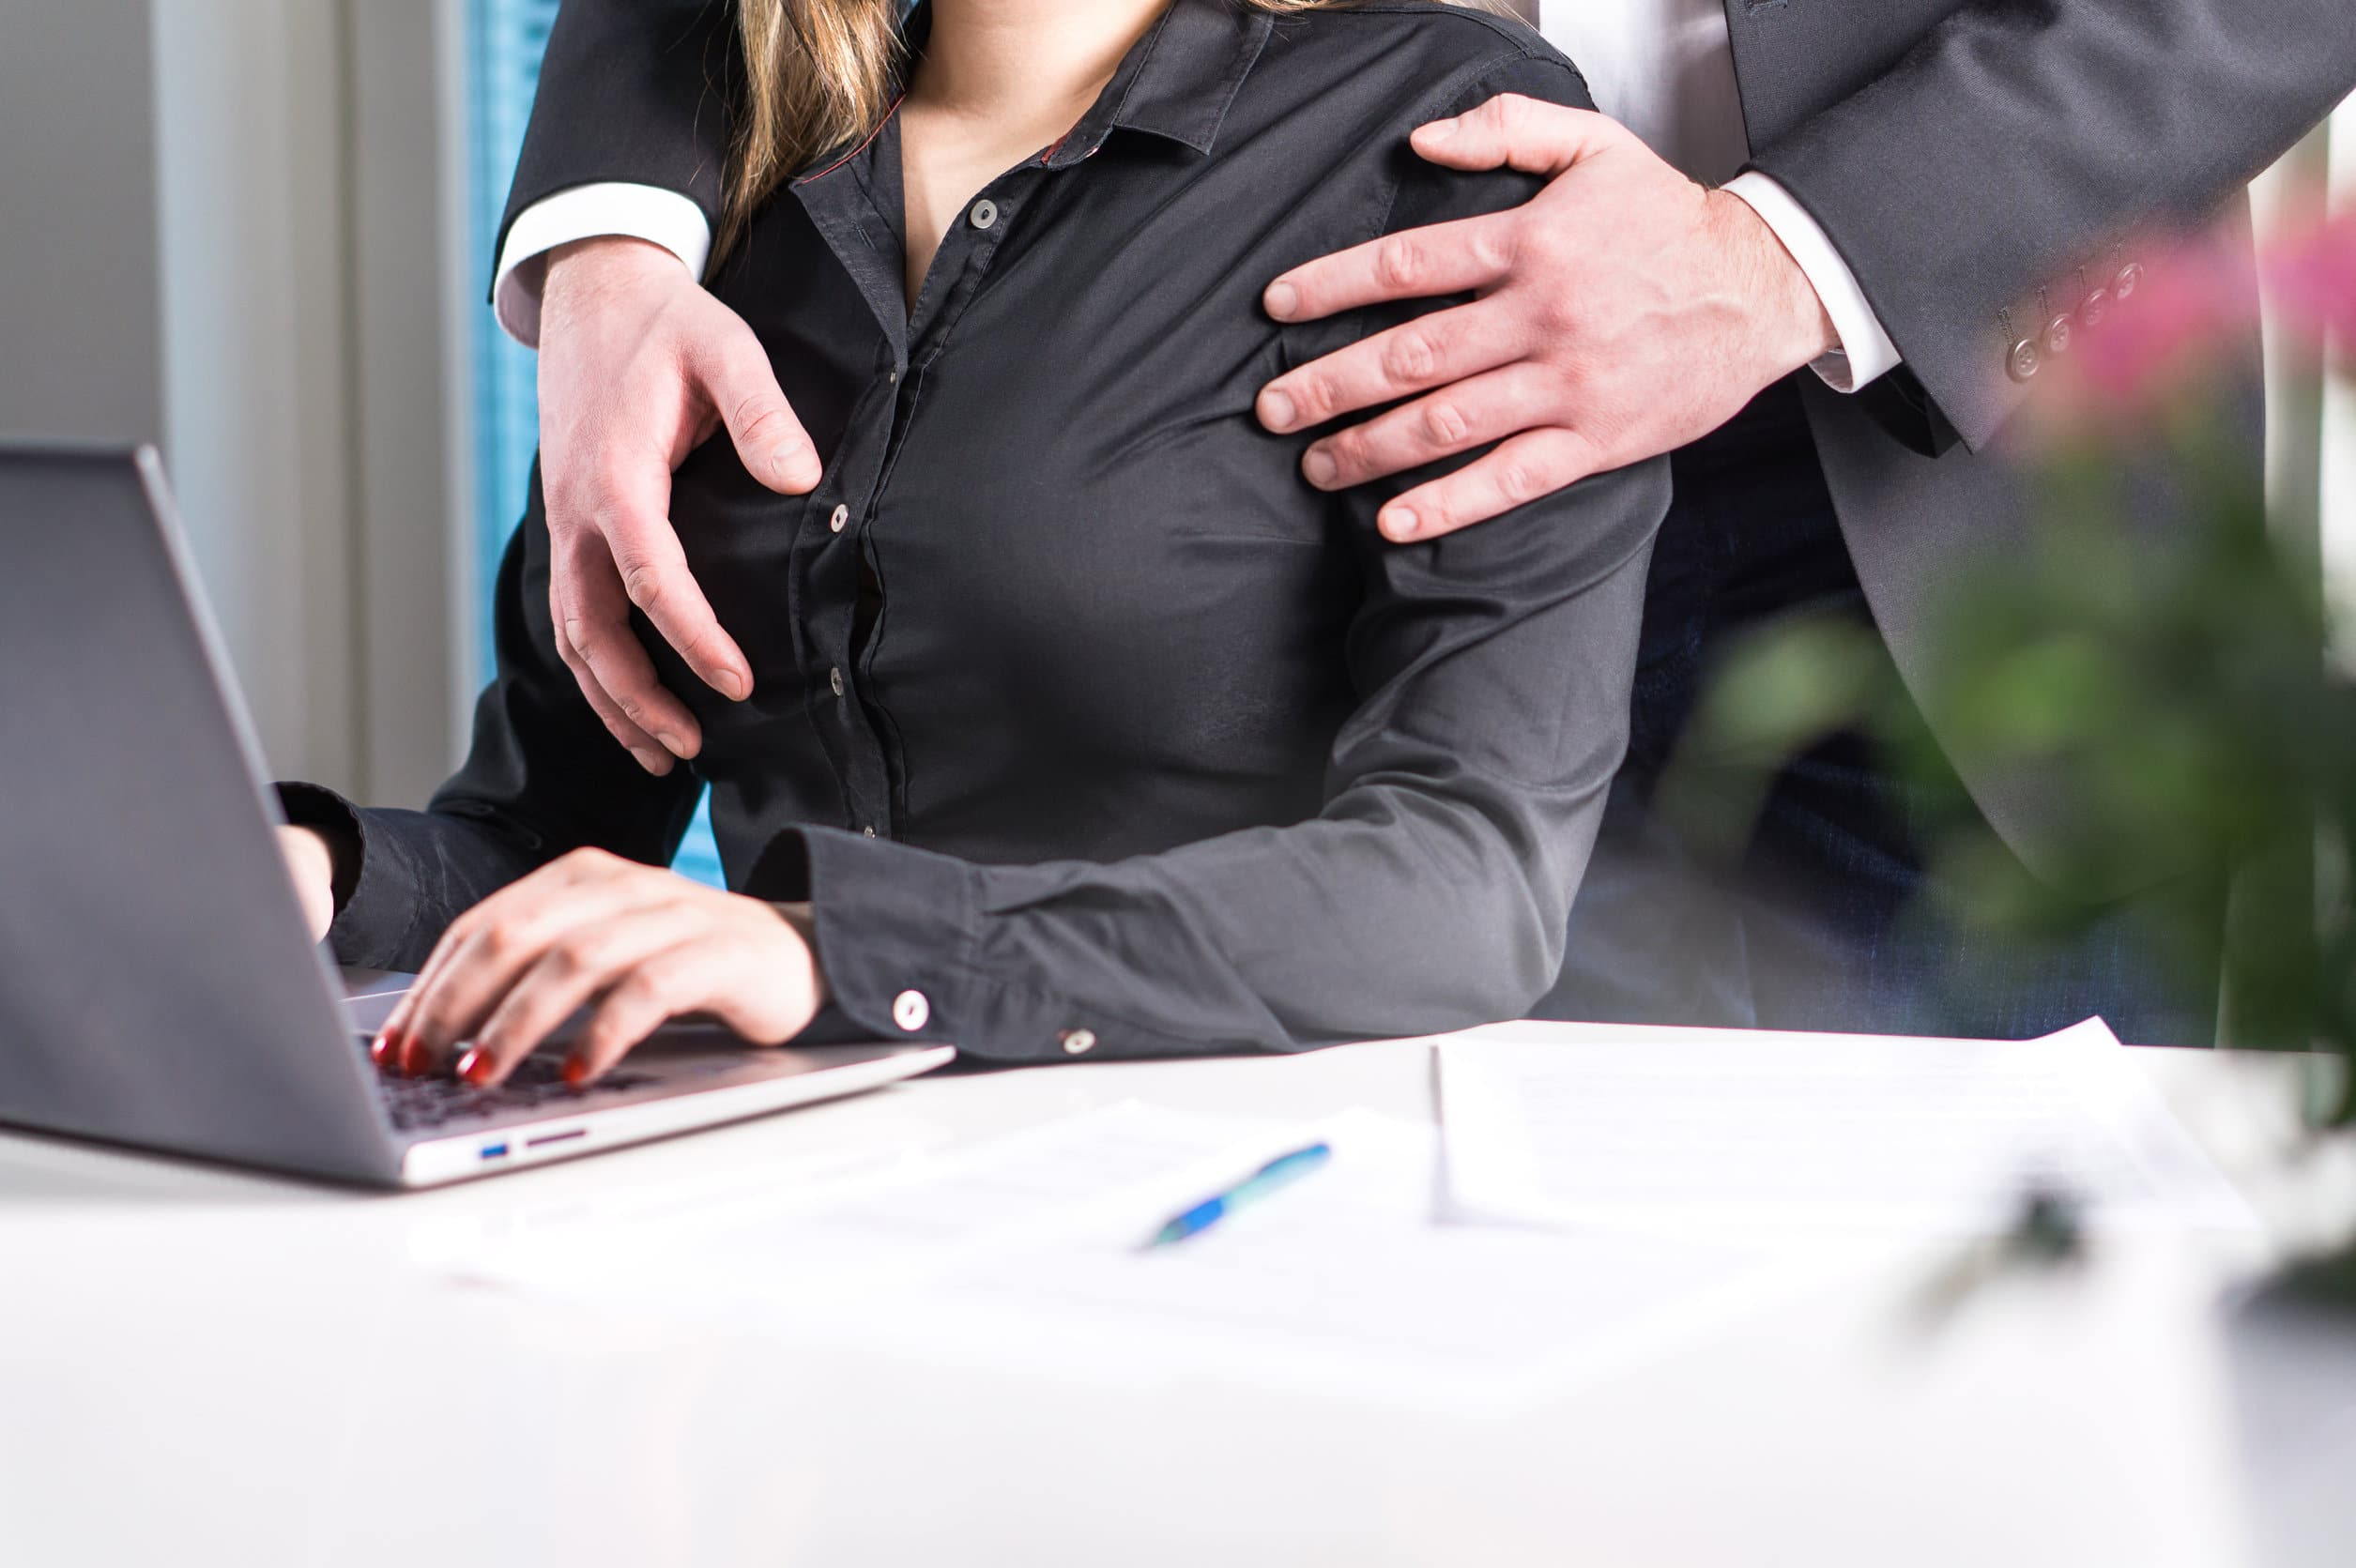 What Is Unlawful Sexual Contact in Colorado?